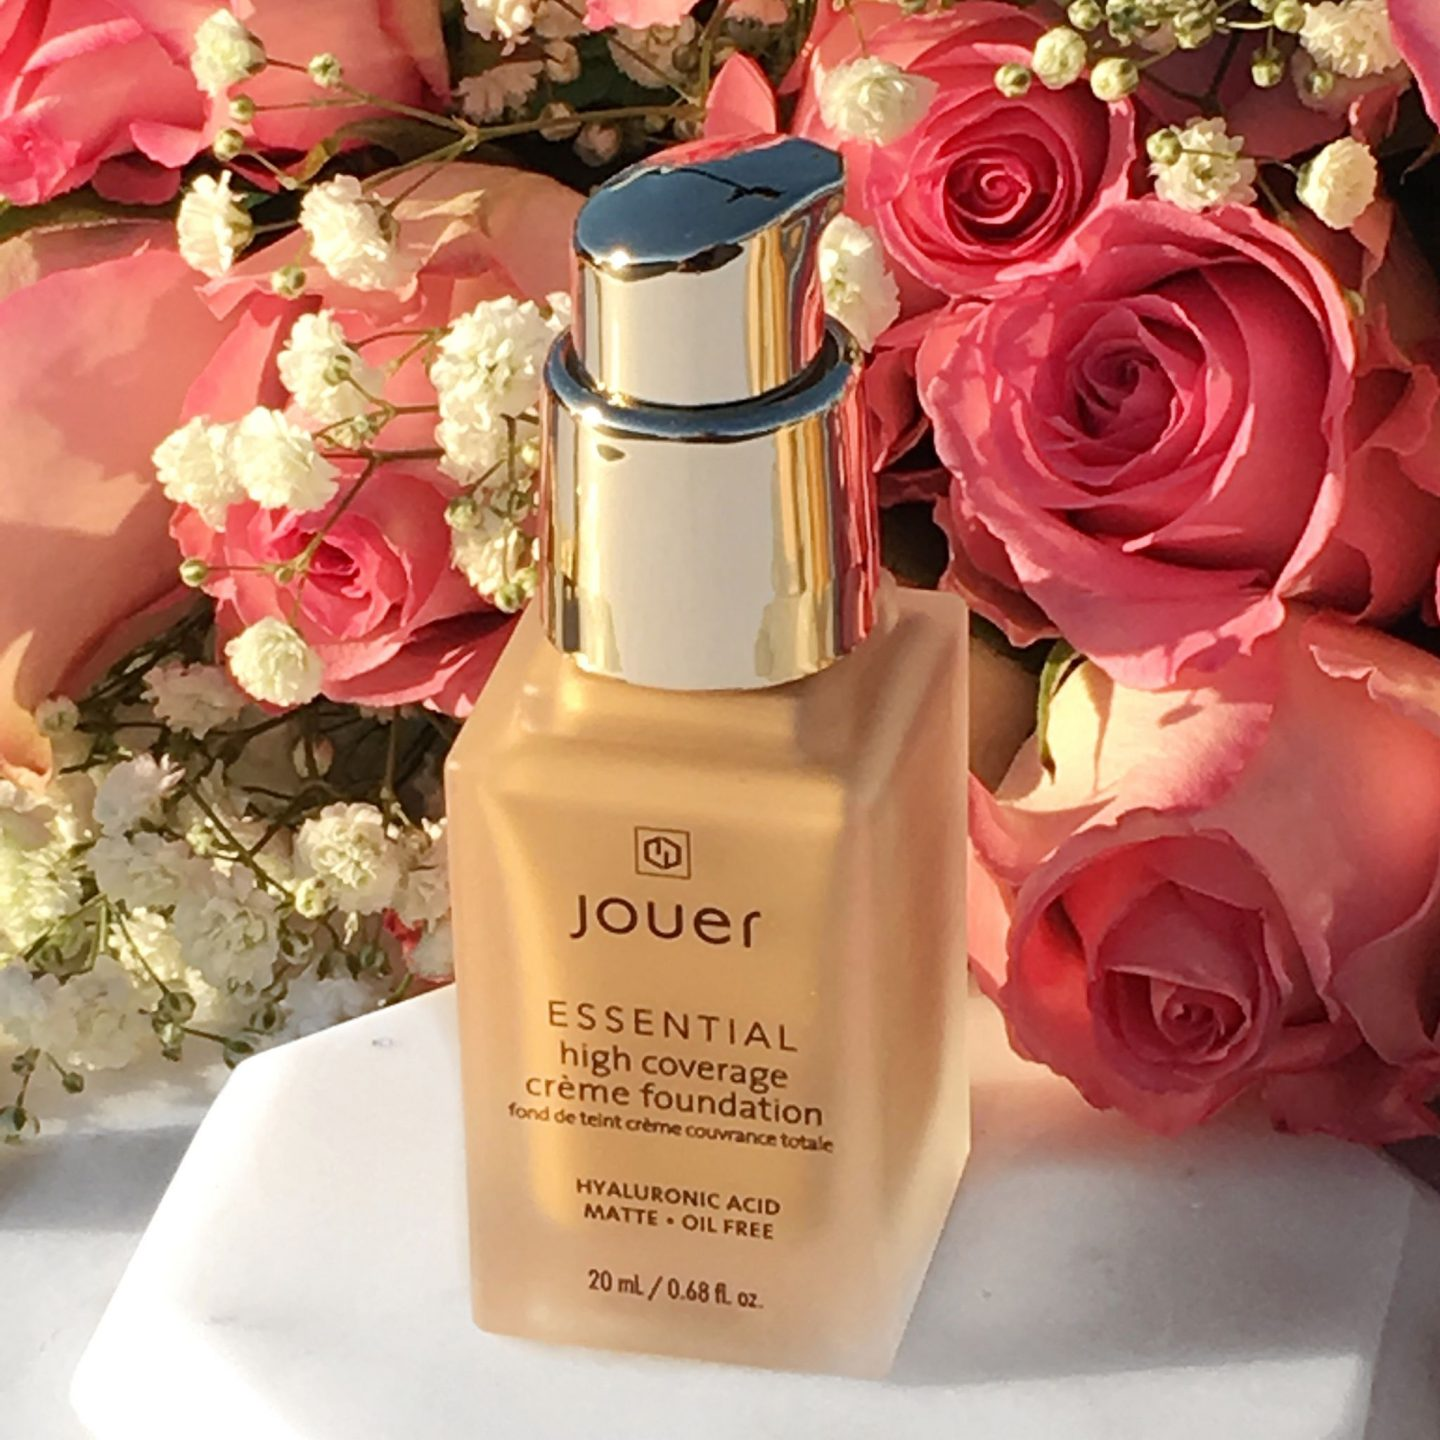 Jouer Cosmetics Essential High Creme Coverage Foundation swatches and review www.calibeaute.com